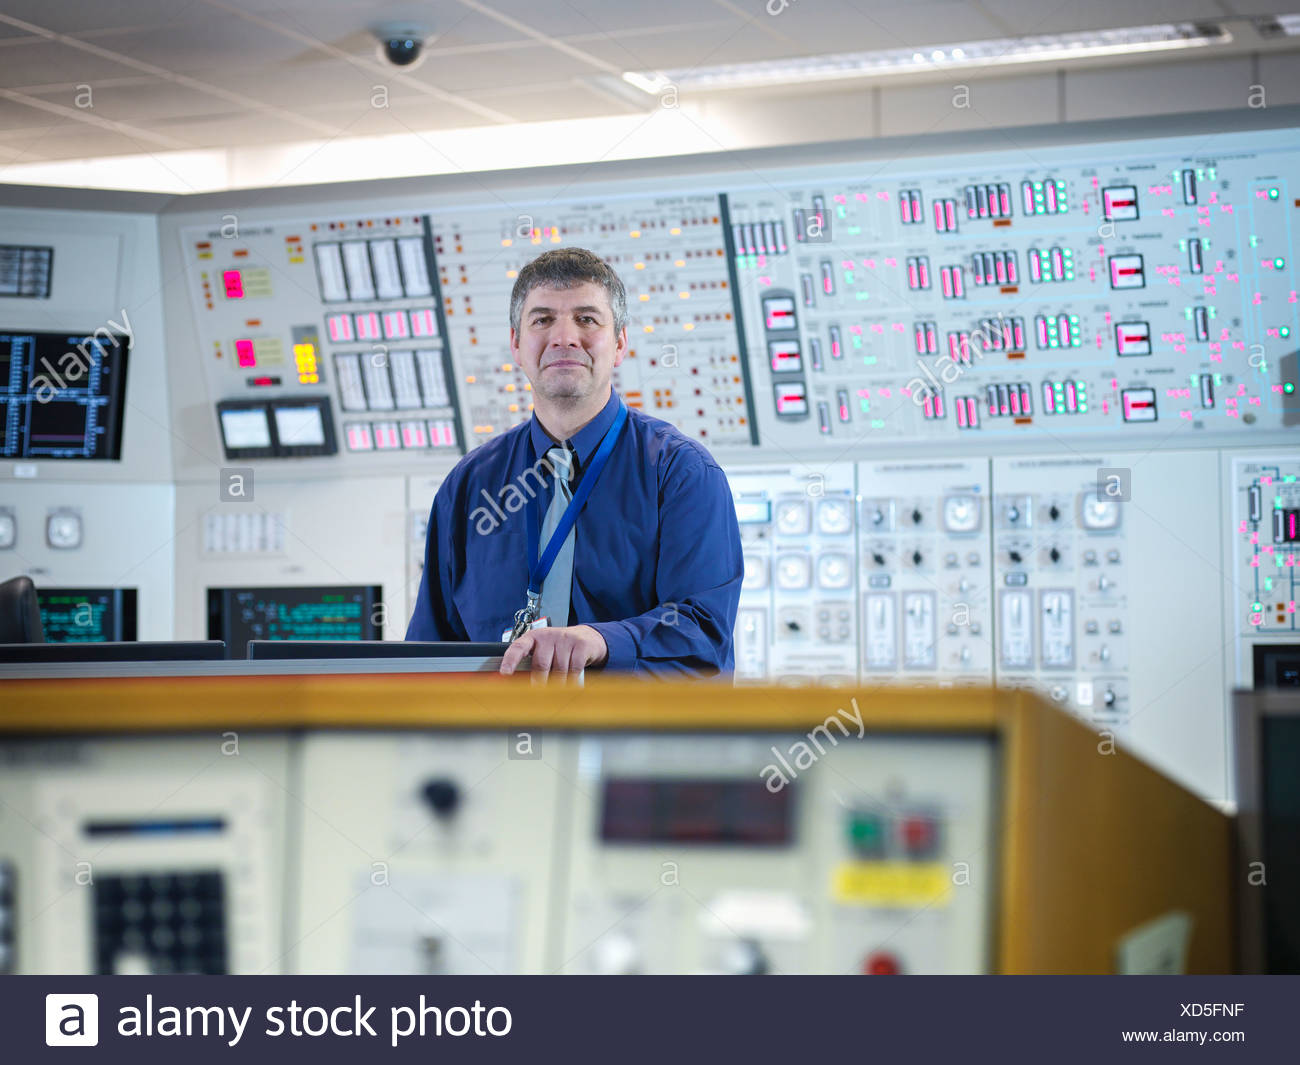 Portrait of operator in nuclear power station control room simulator - Stock Image